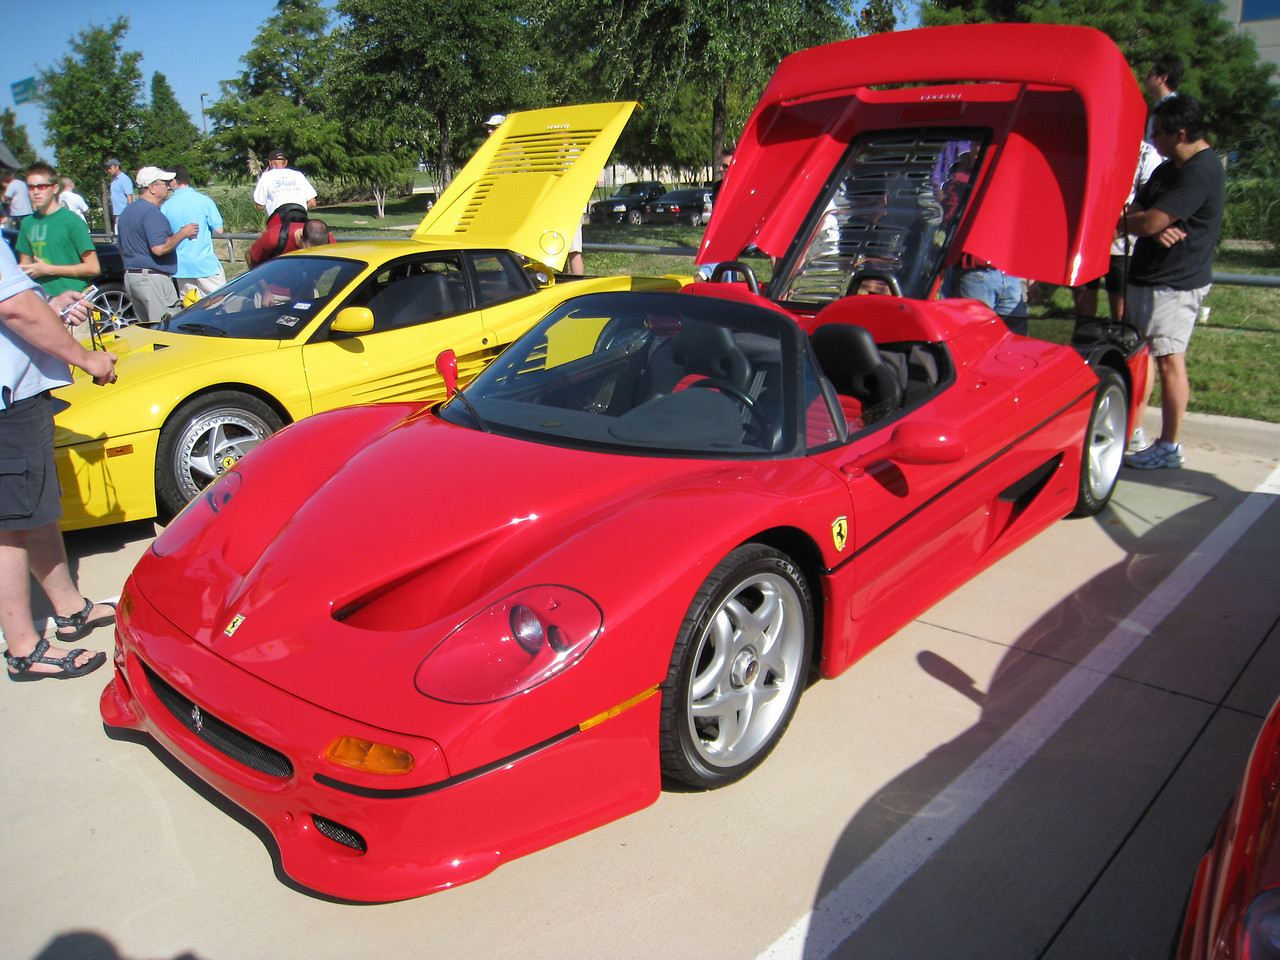 Ferrari F50 - worth about $775-875K